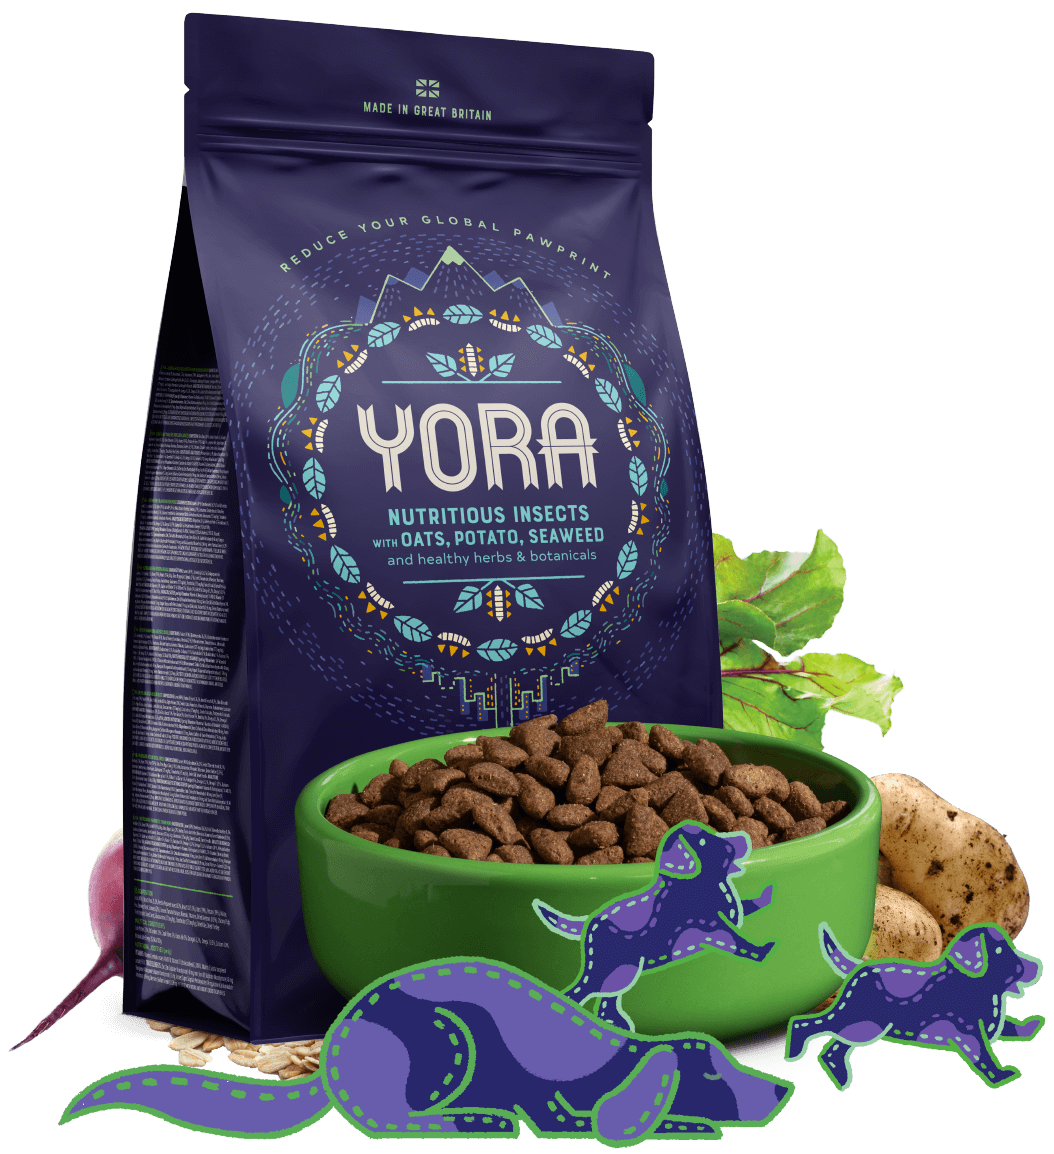 Yora nutritious insects with oats, potato, seaweed and healthy herbs and botanicals